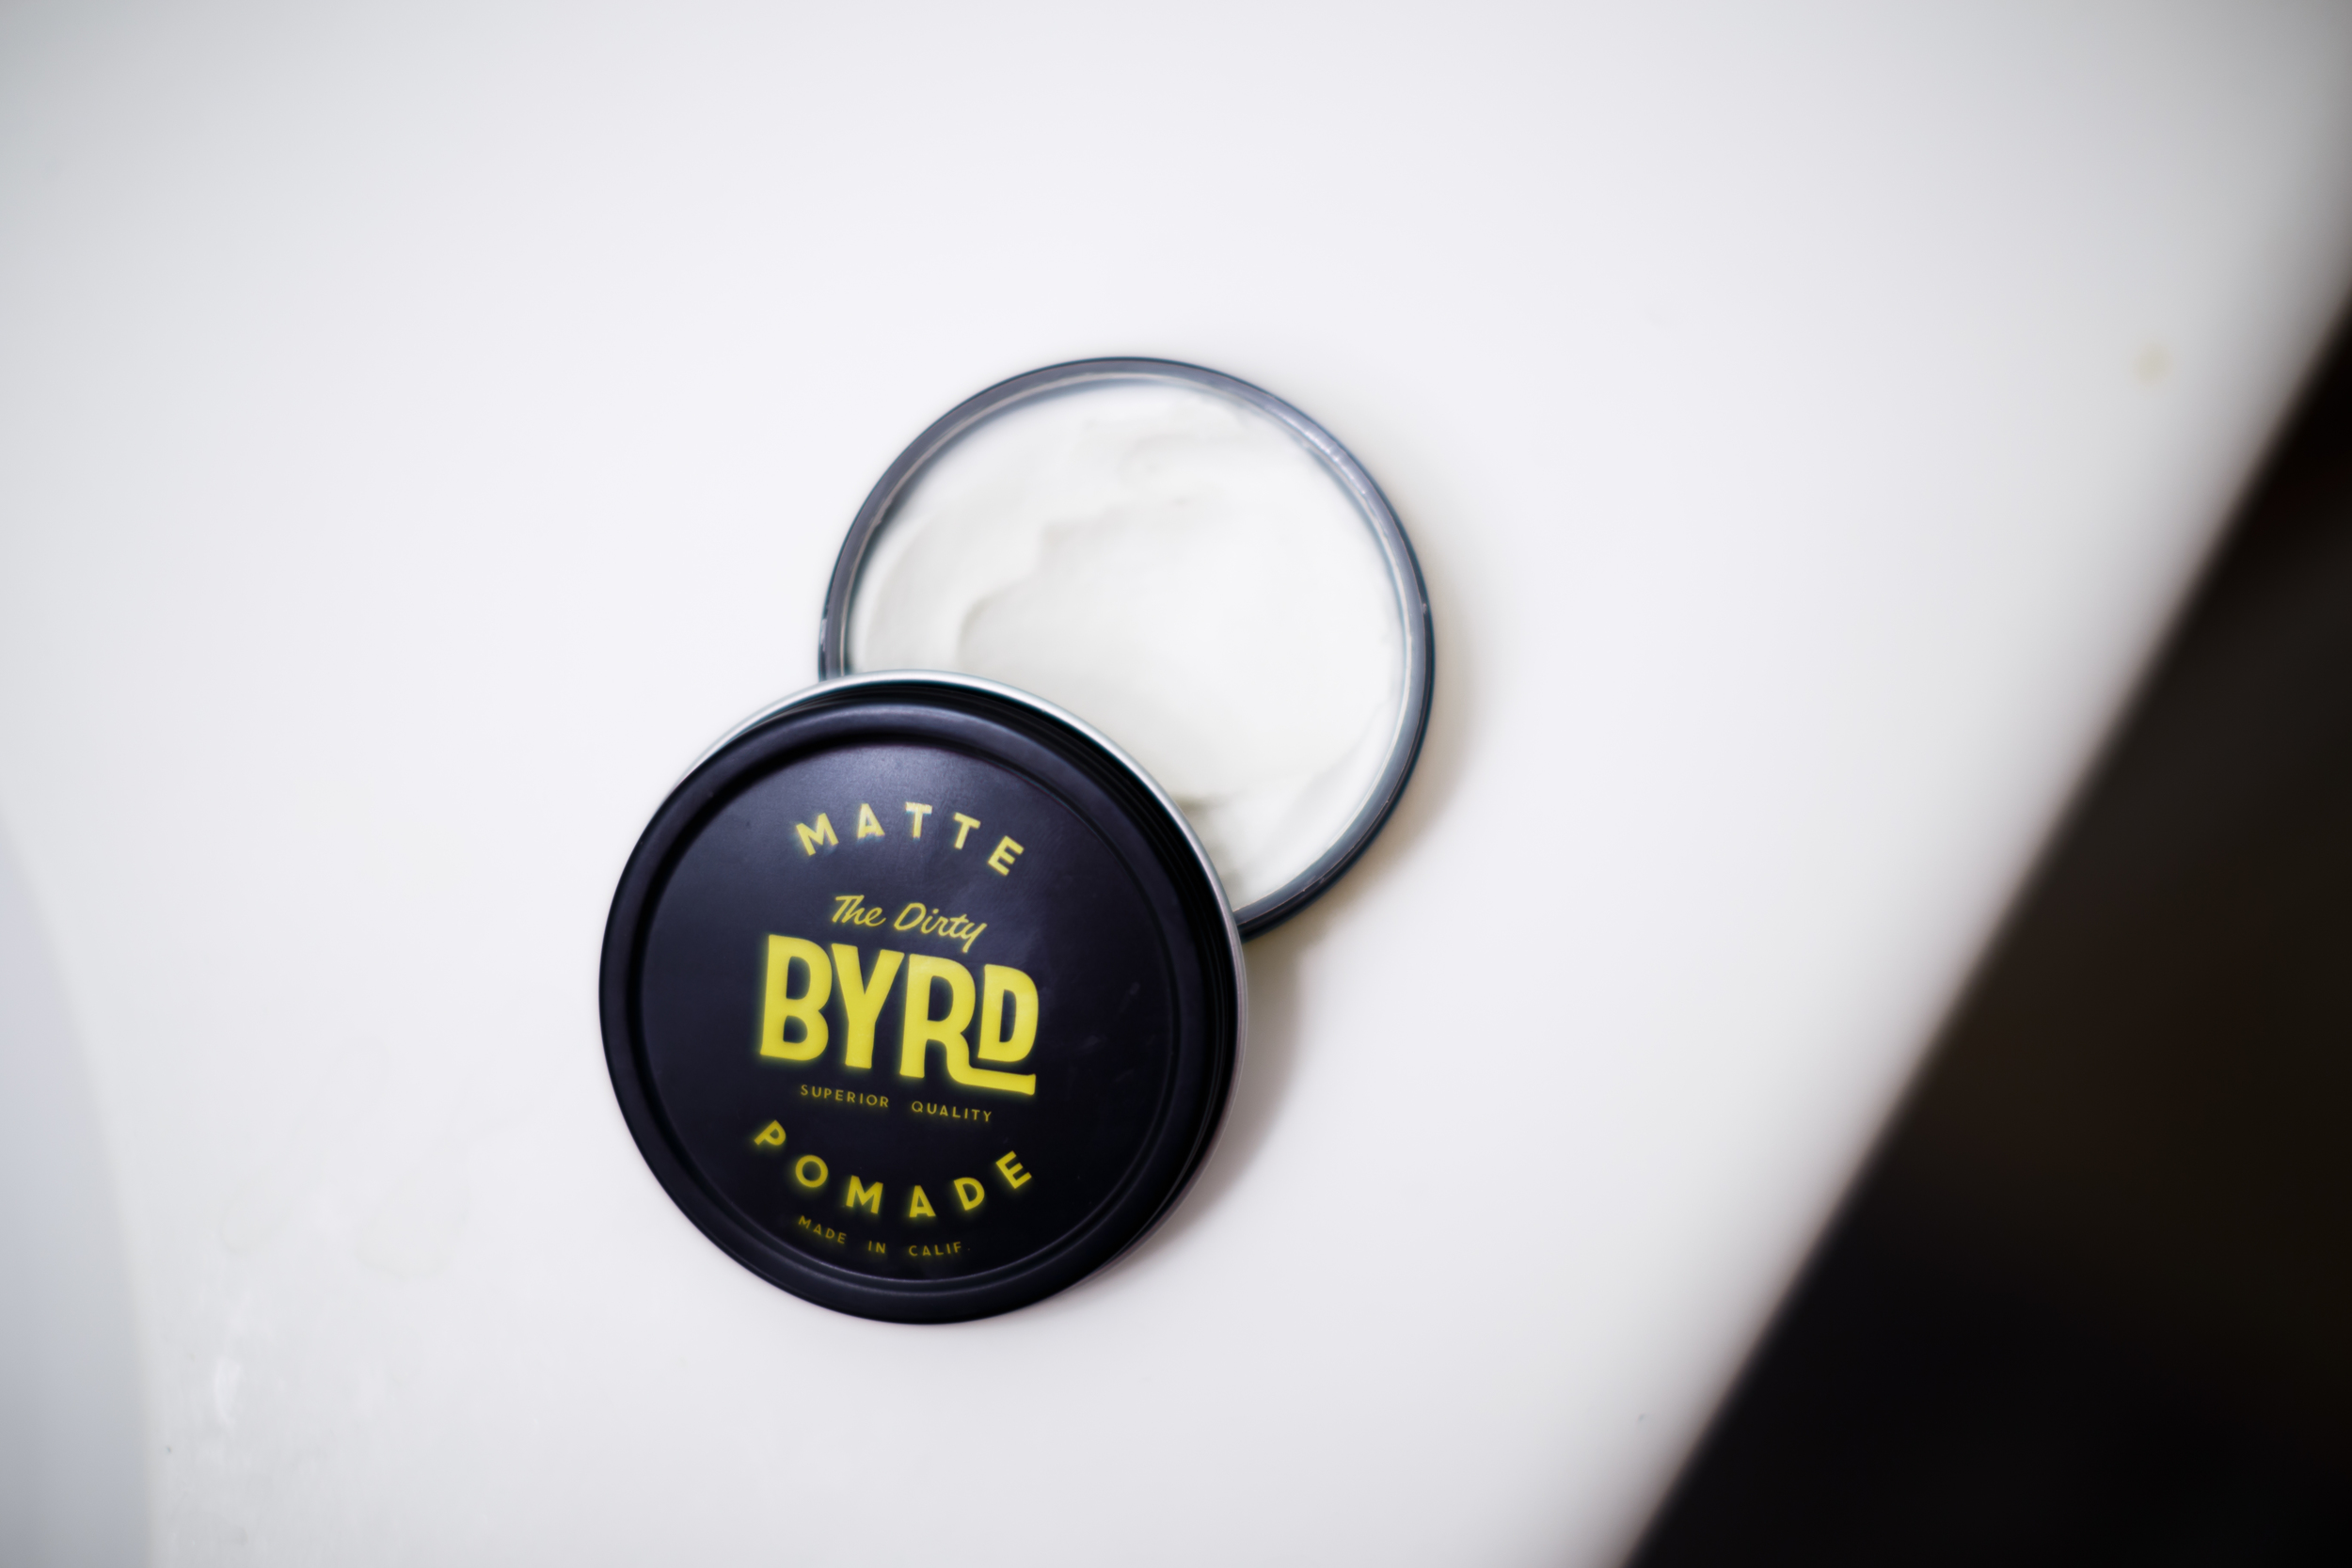 'The Dirty' Byrd Matte Pomade texture